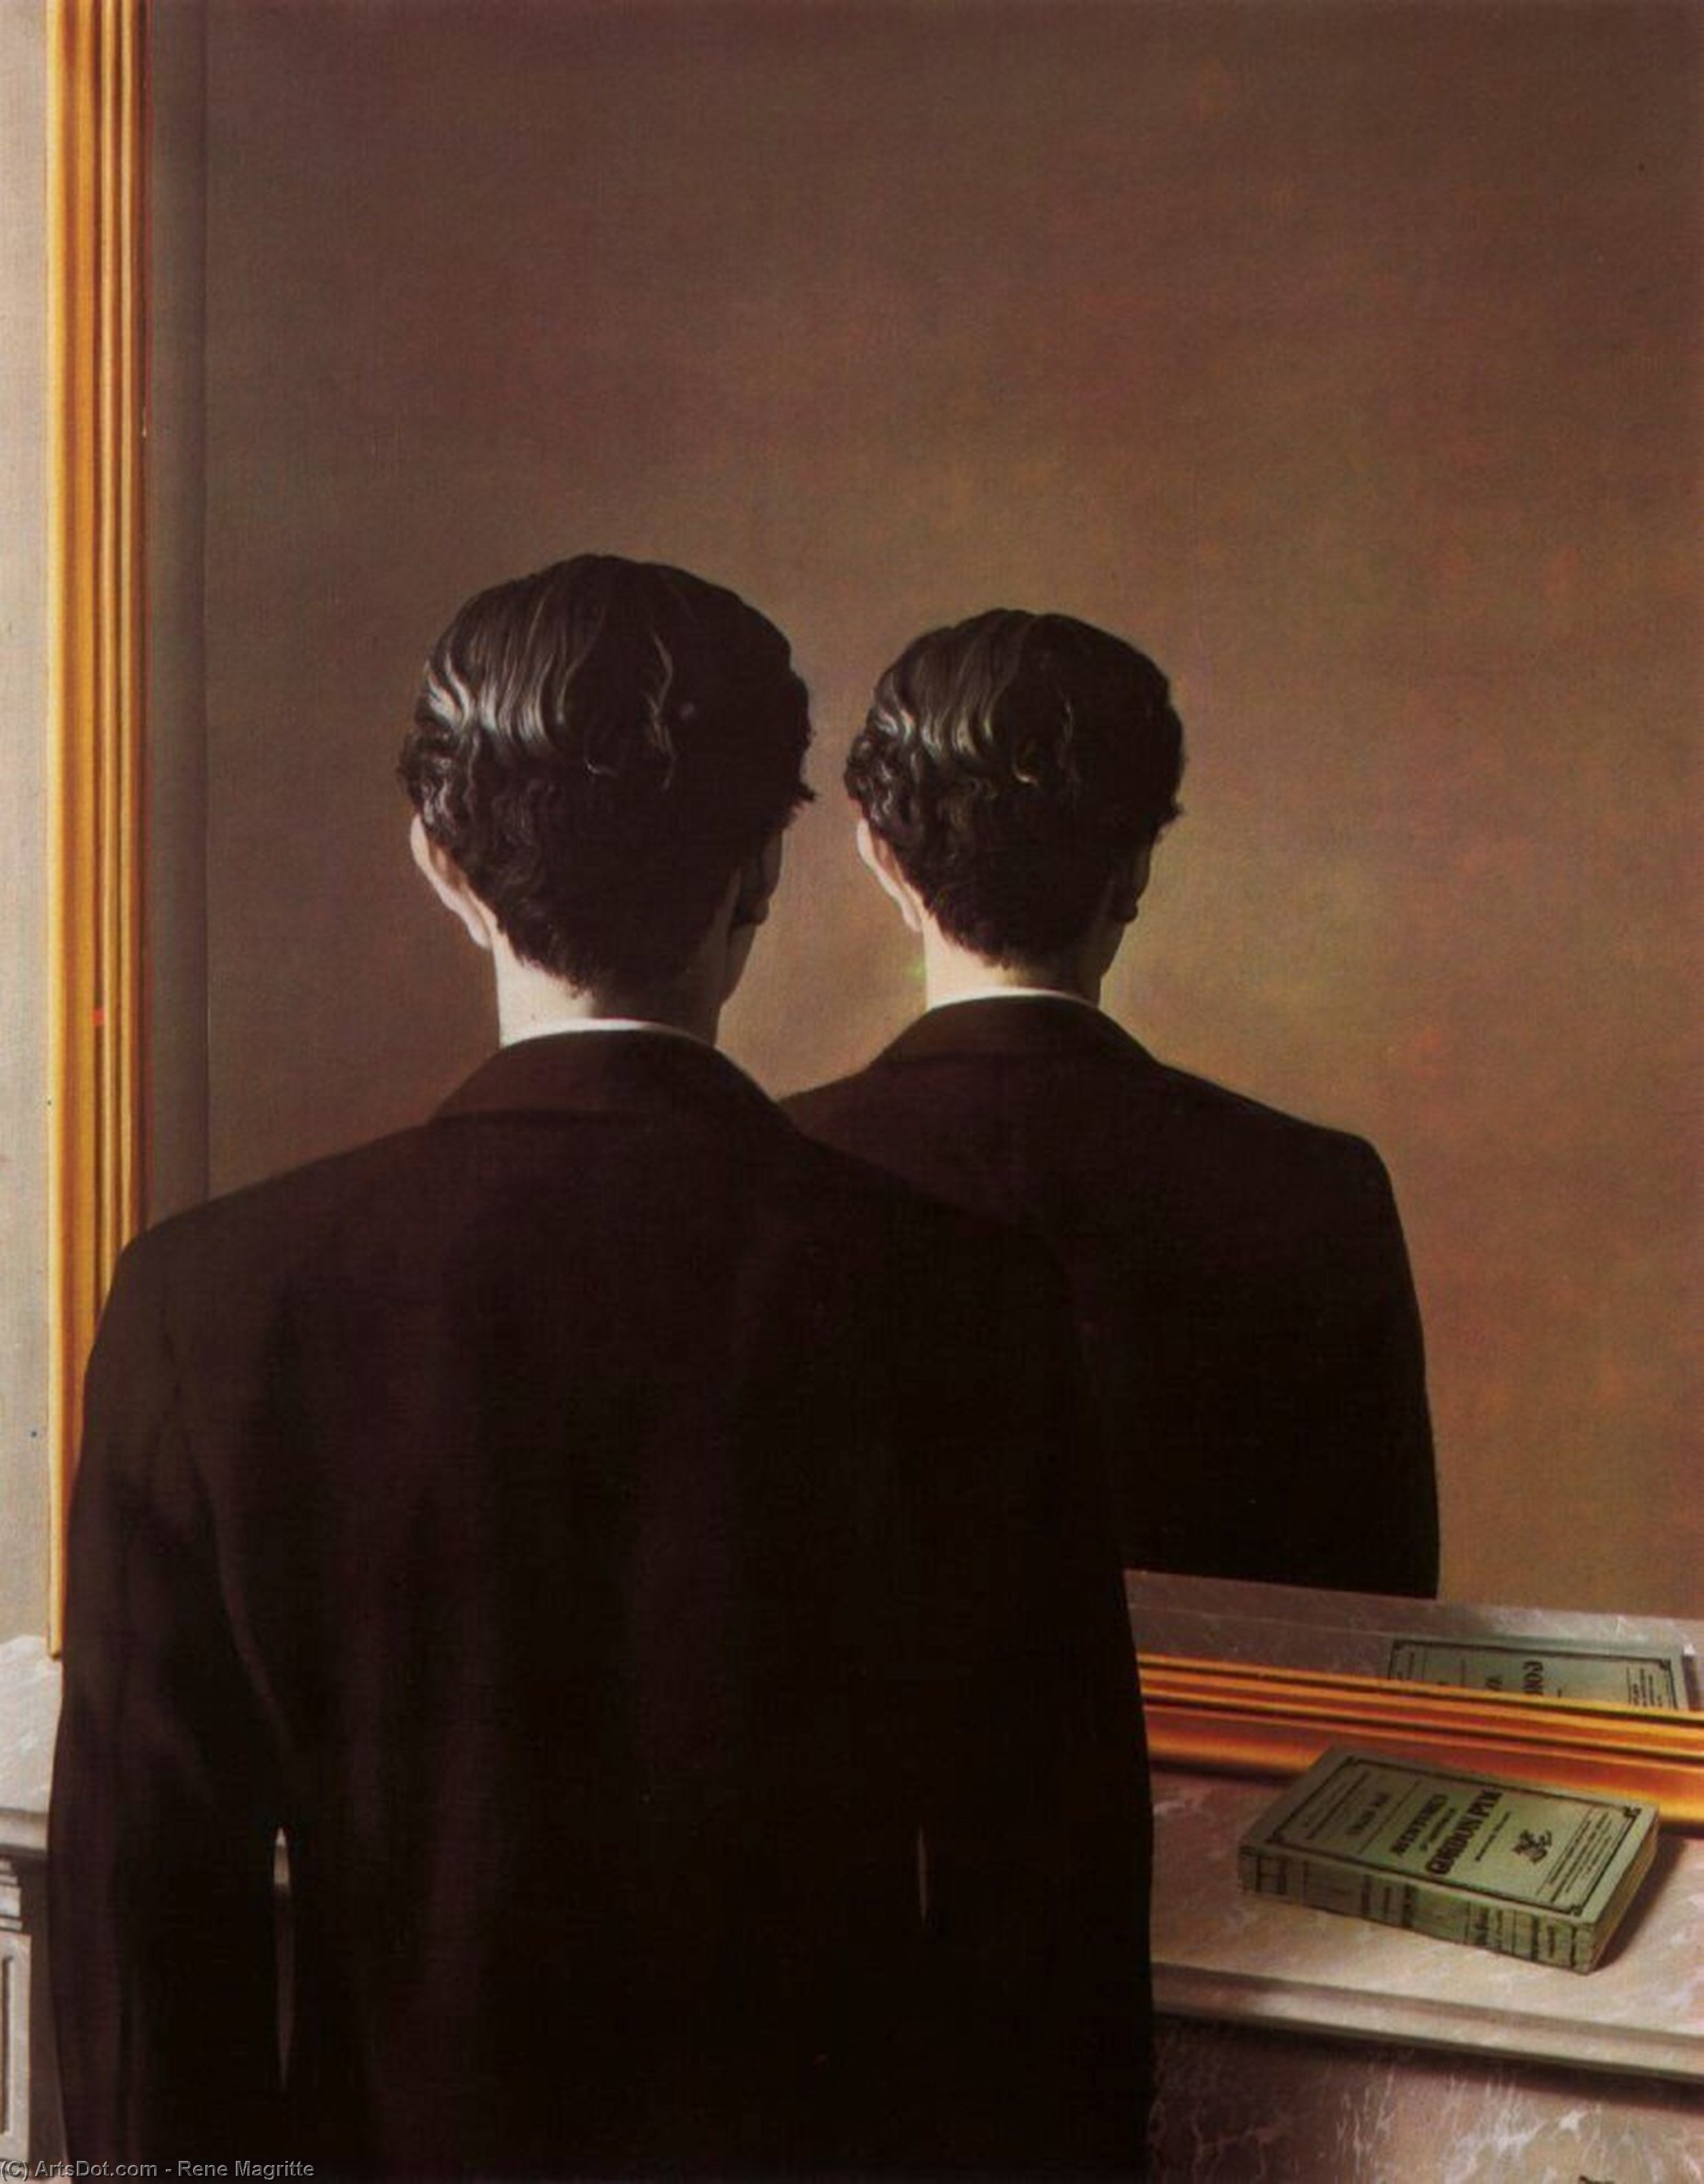 Reproduction prohibited by Rene Magritte (1898-1967, Belgium)